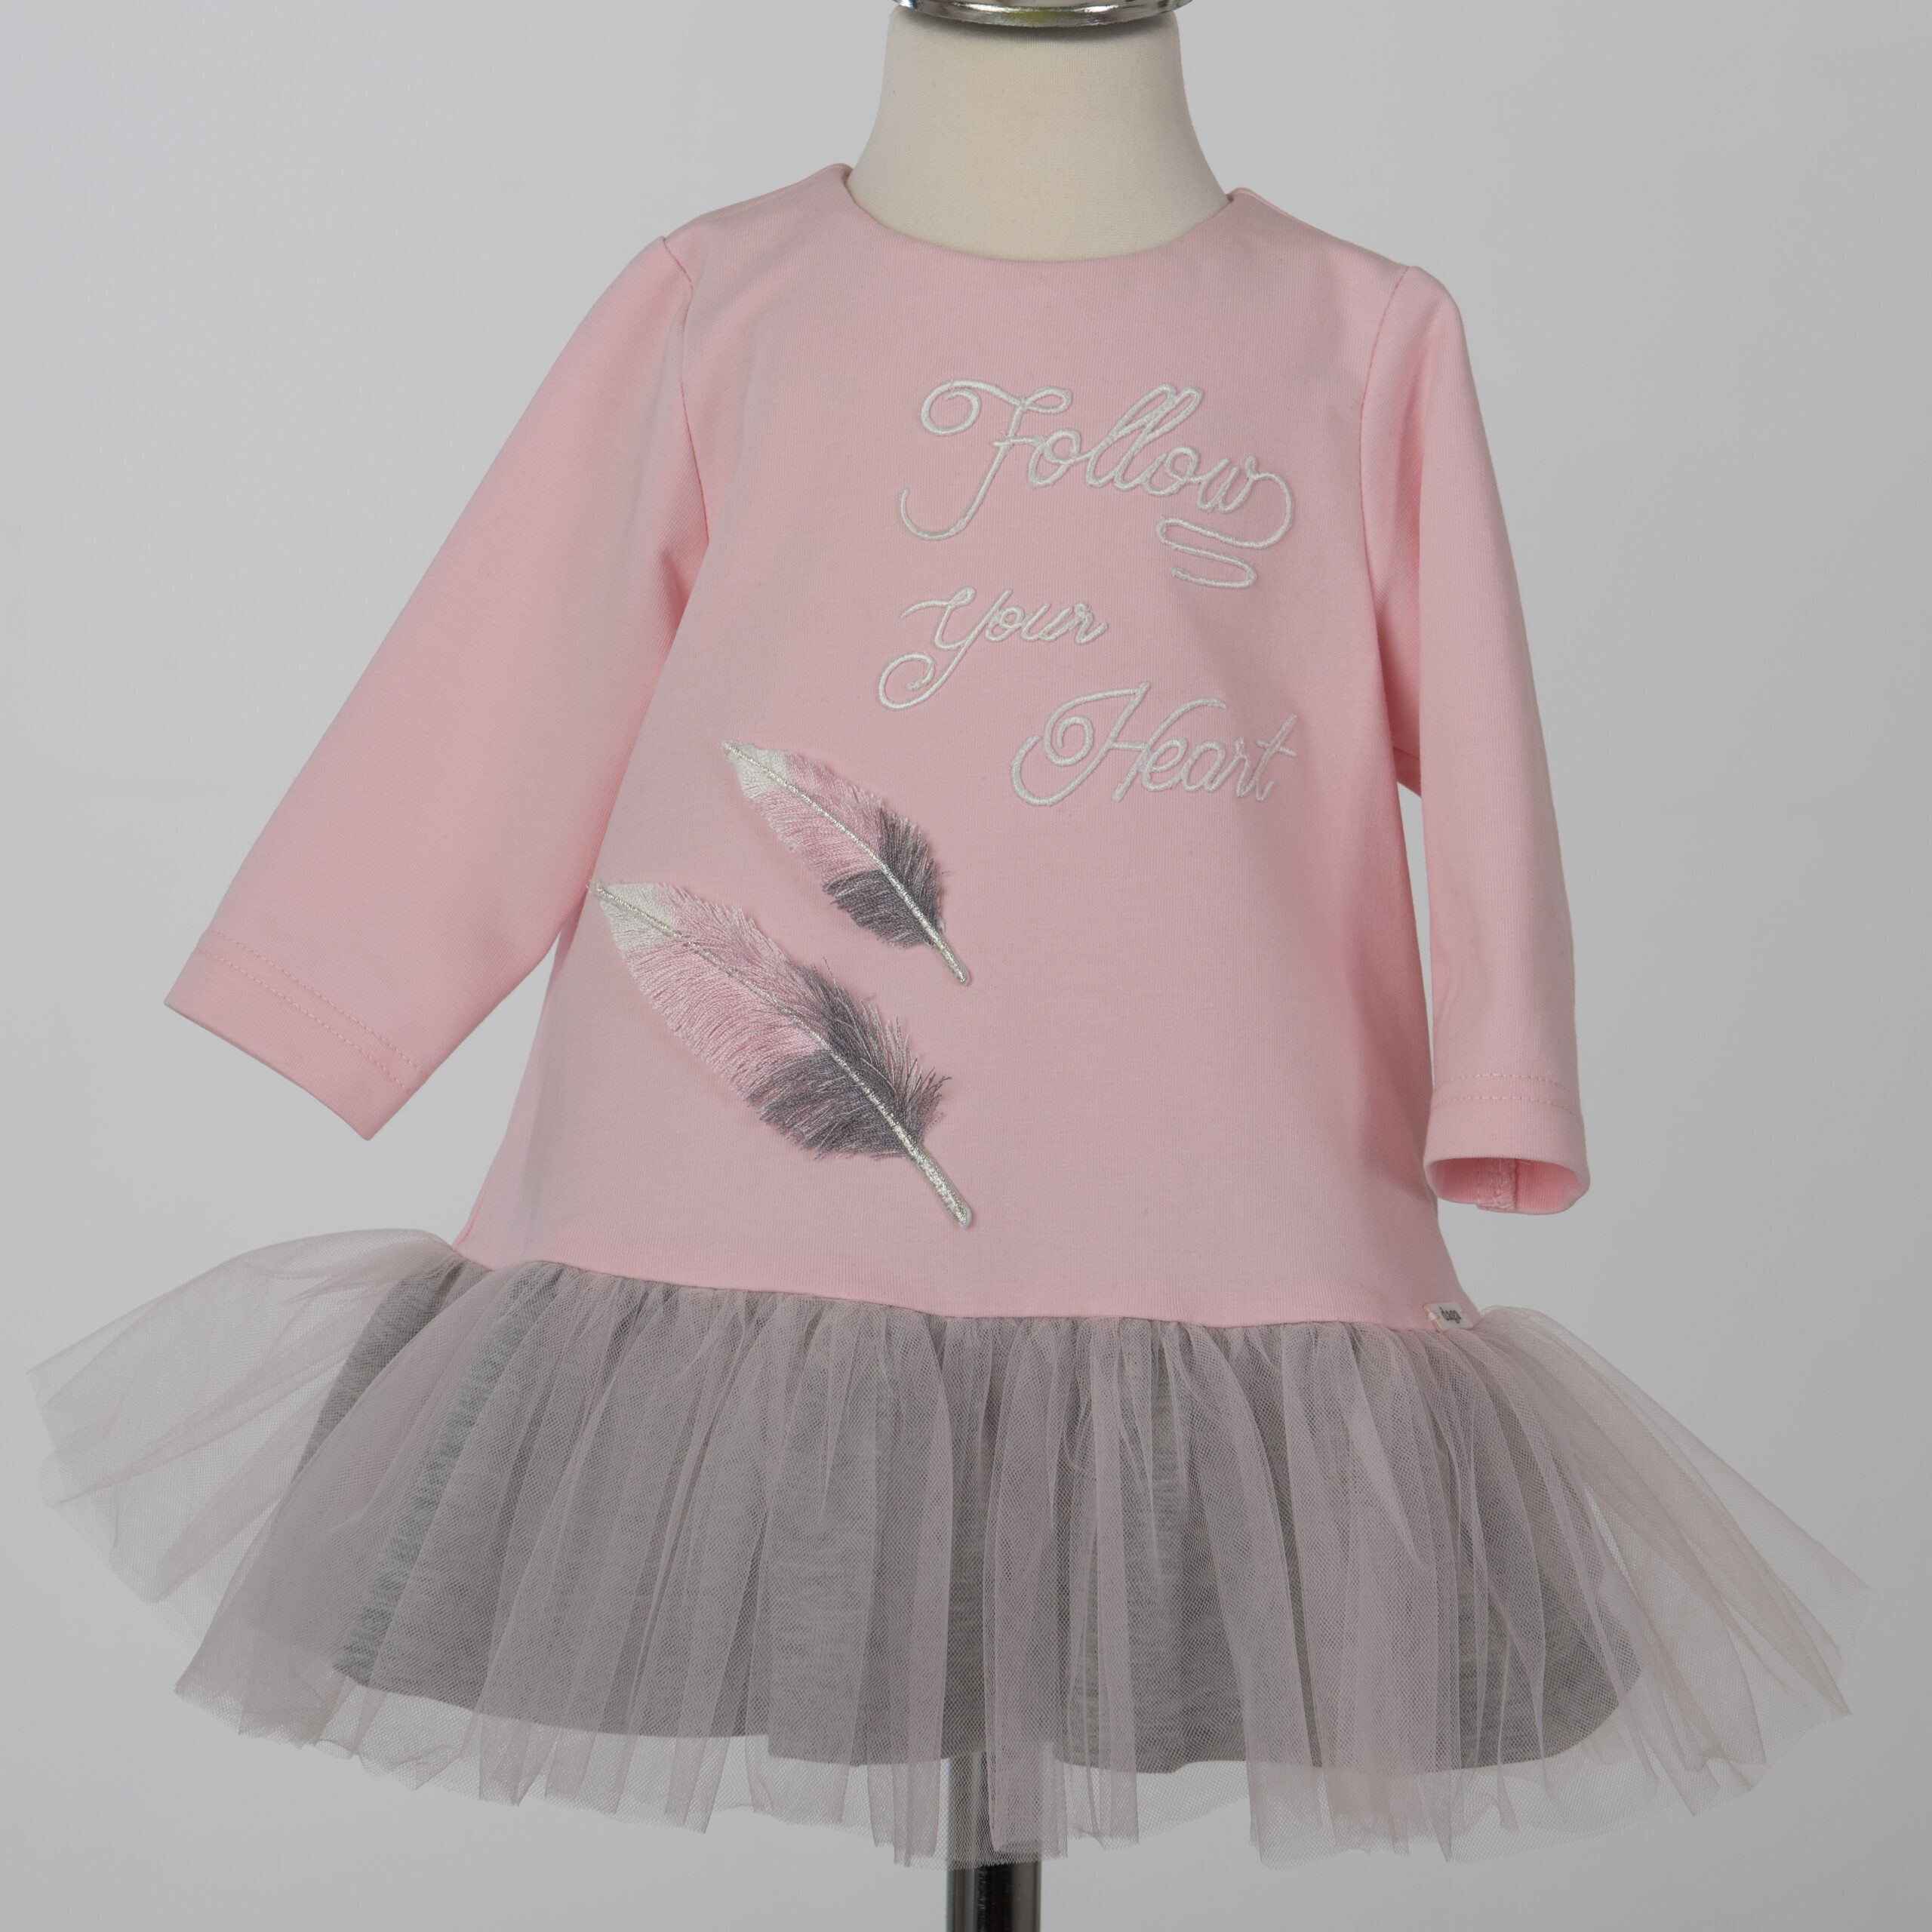 Daga Pink 'Follow Your Dreams' Dress With Feathers